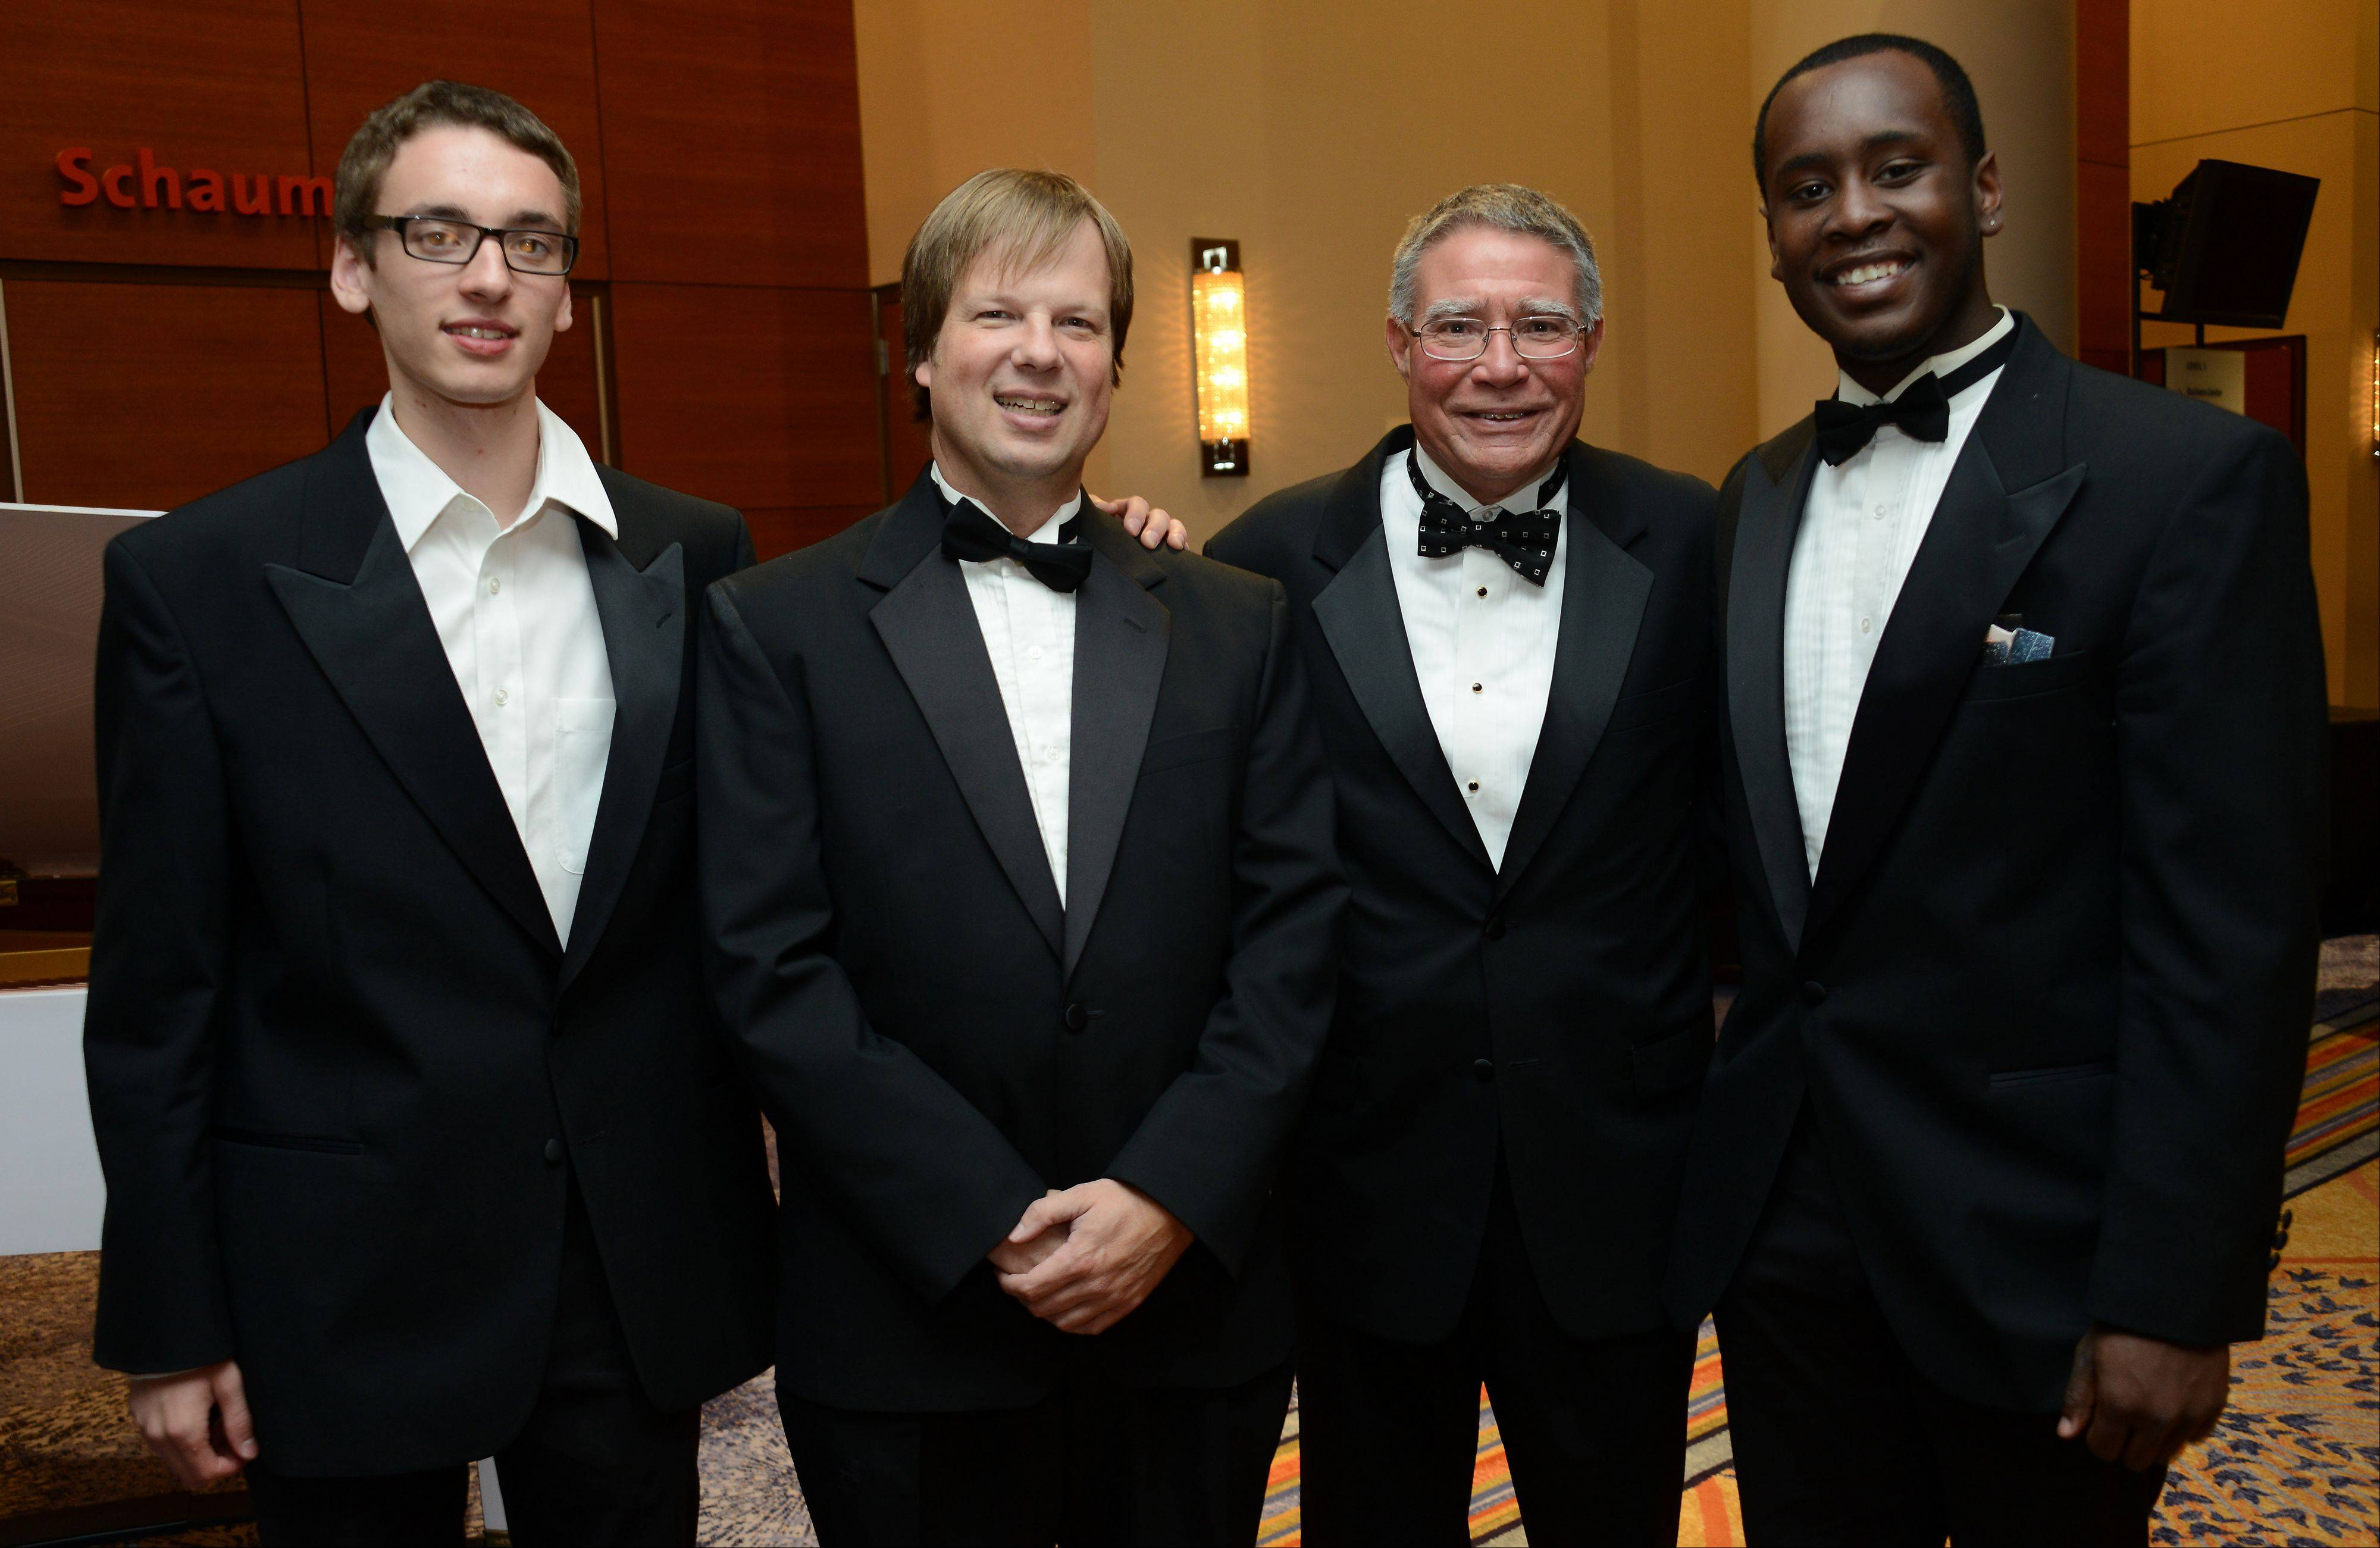 College President Kenneth Ender, third from left, join members of the Harper College Jazz Lab Band, from left, Conor Roe of Arlington Heights, Ken Spurr of Elmhurst and Jalen Little of Schaumburg, far right.